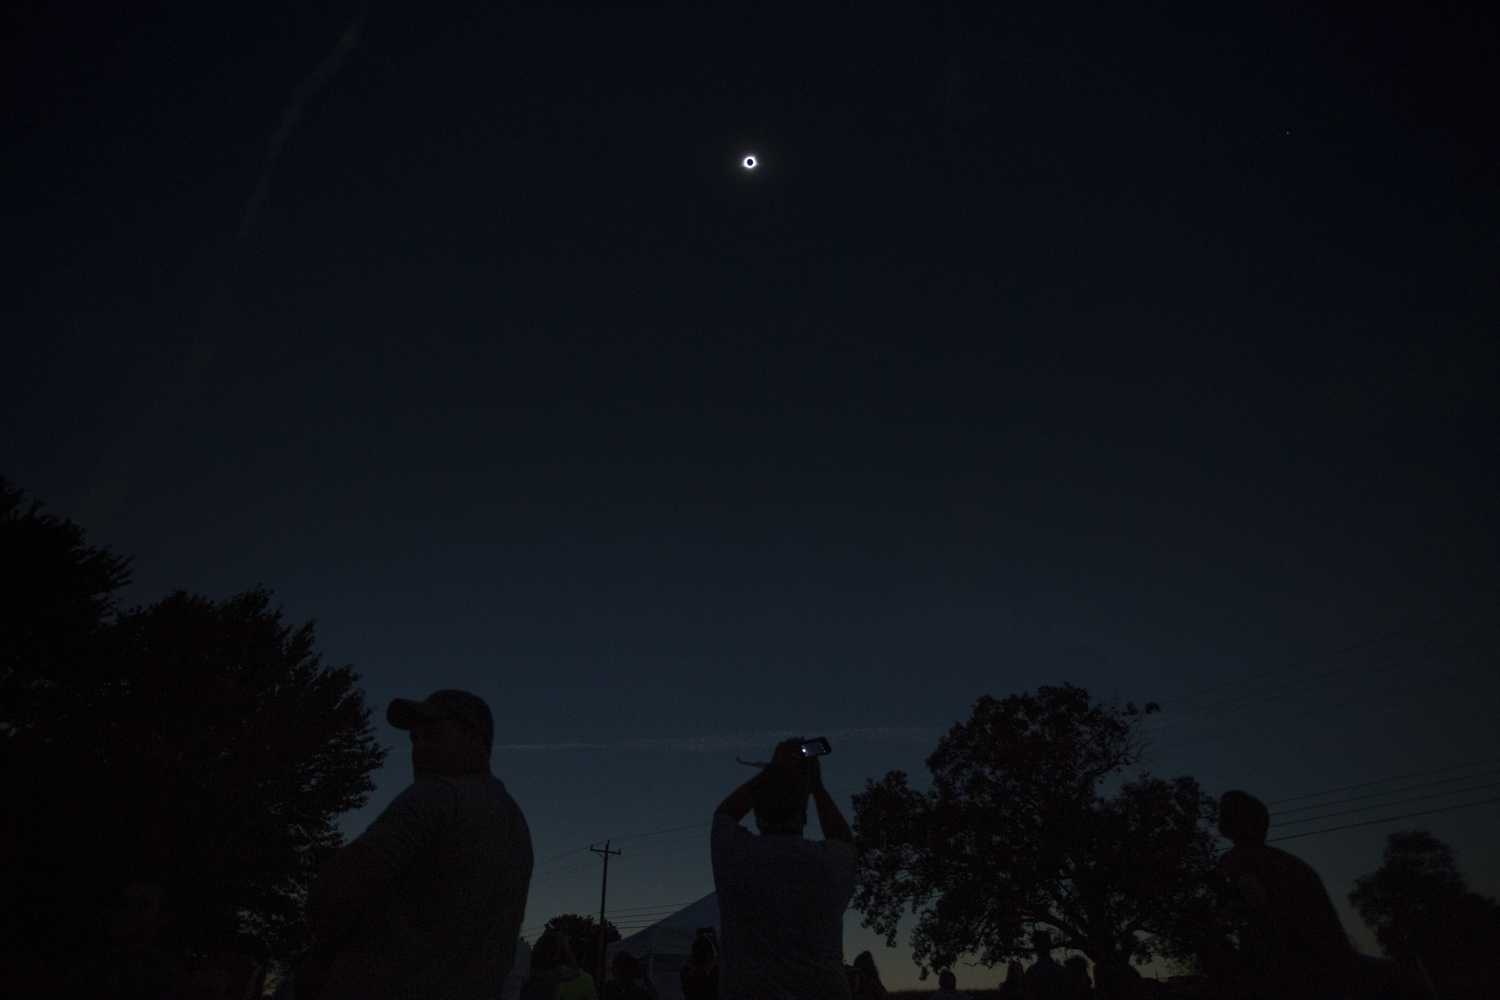 The Pitt Shadow Bandits, a team of Pitt students, faculty and staff, traveled to Tennessee to watch the total solar eclipse and test a theory about shadow bands.